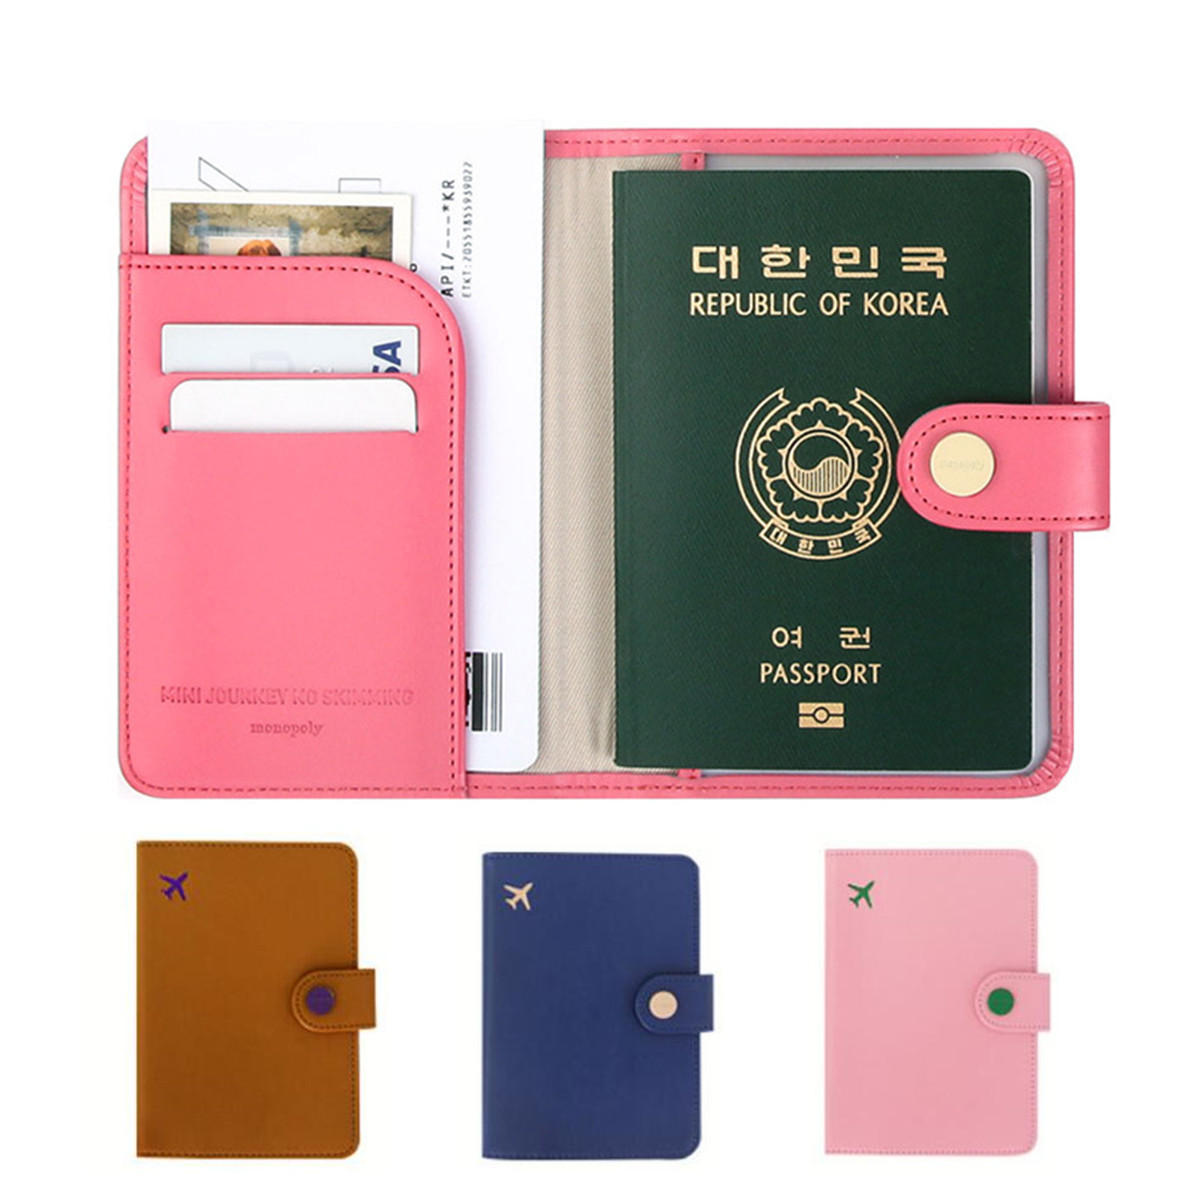 22f7f3e7a383 RFID Blocking Passport Holder Wallet Travel Card Case Organizer Cover  Protector